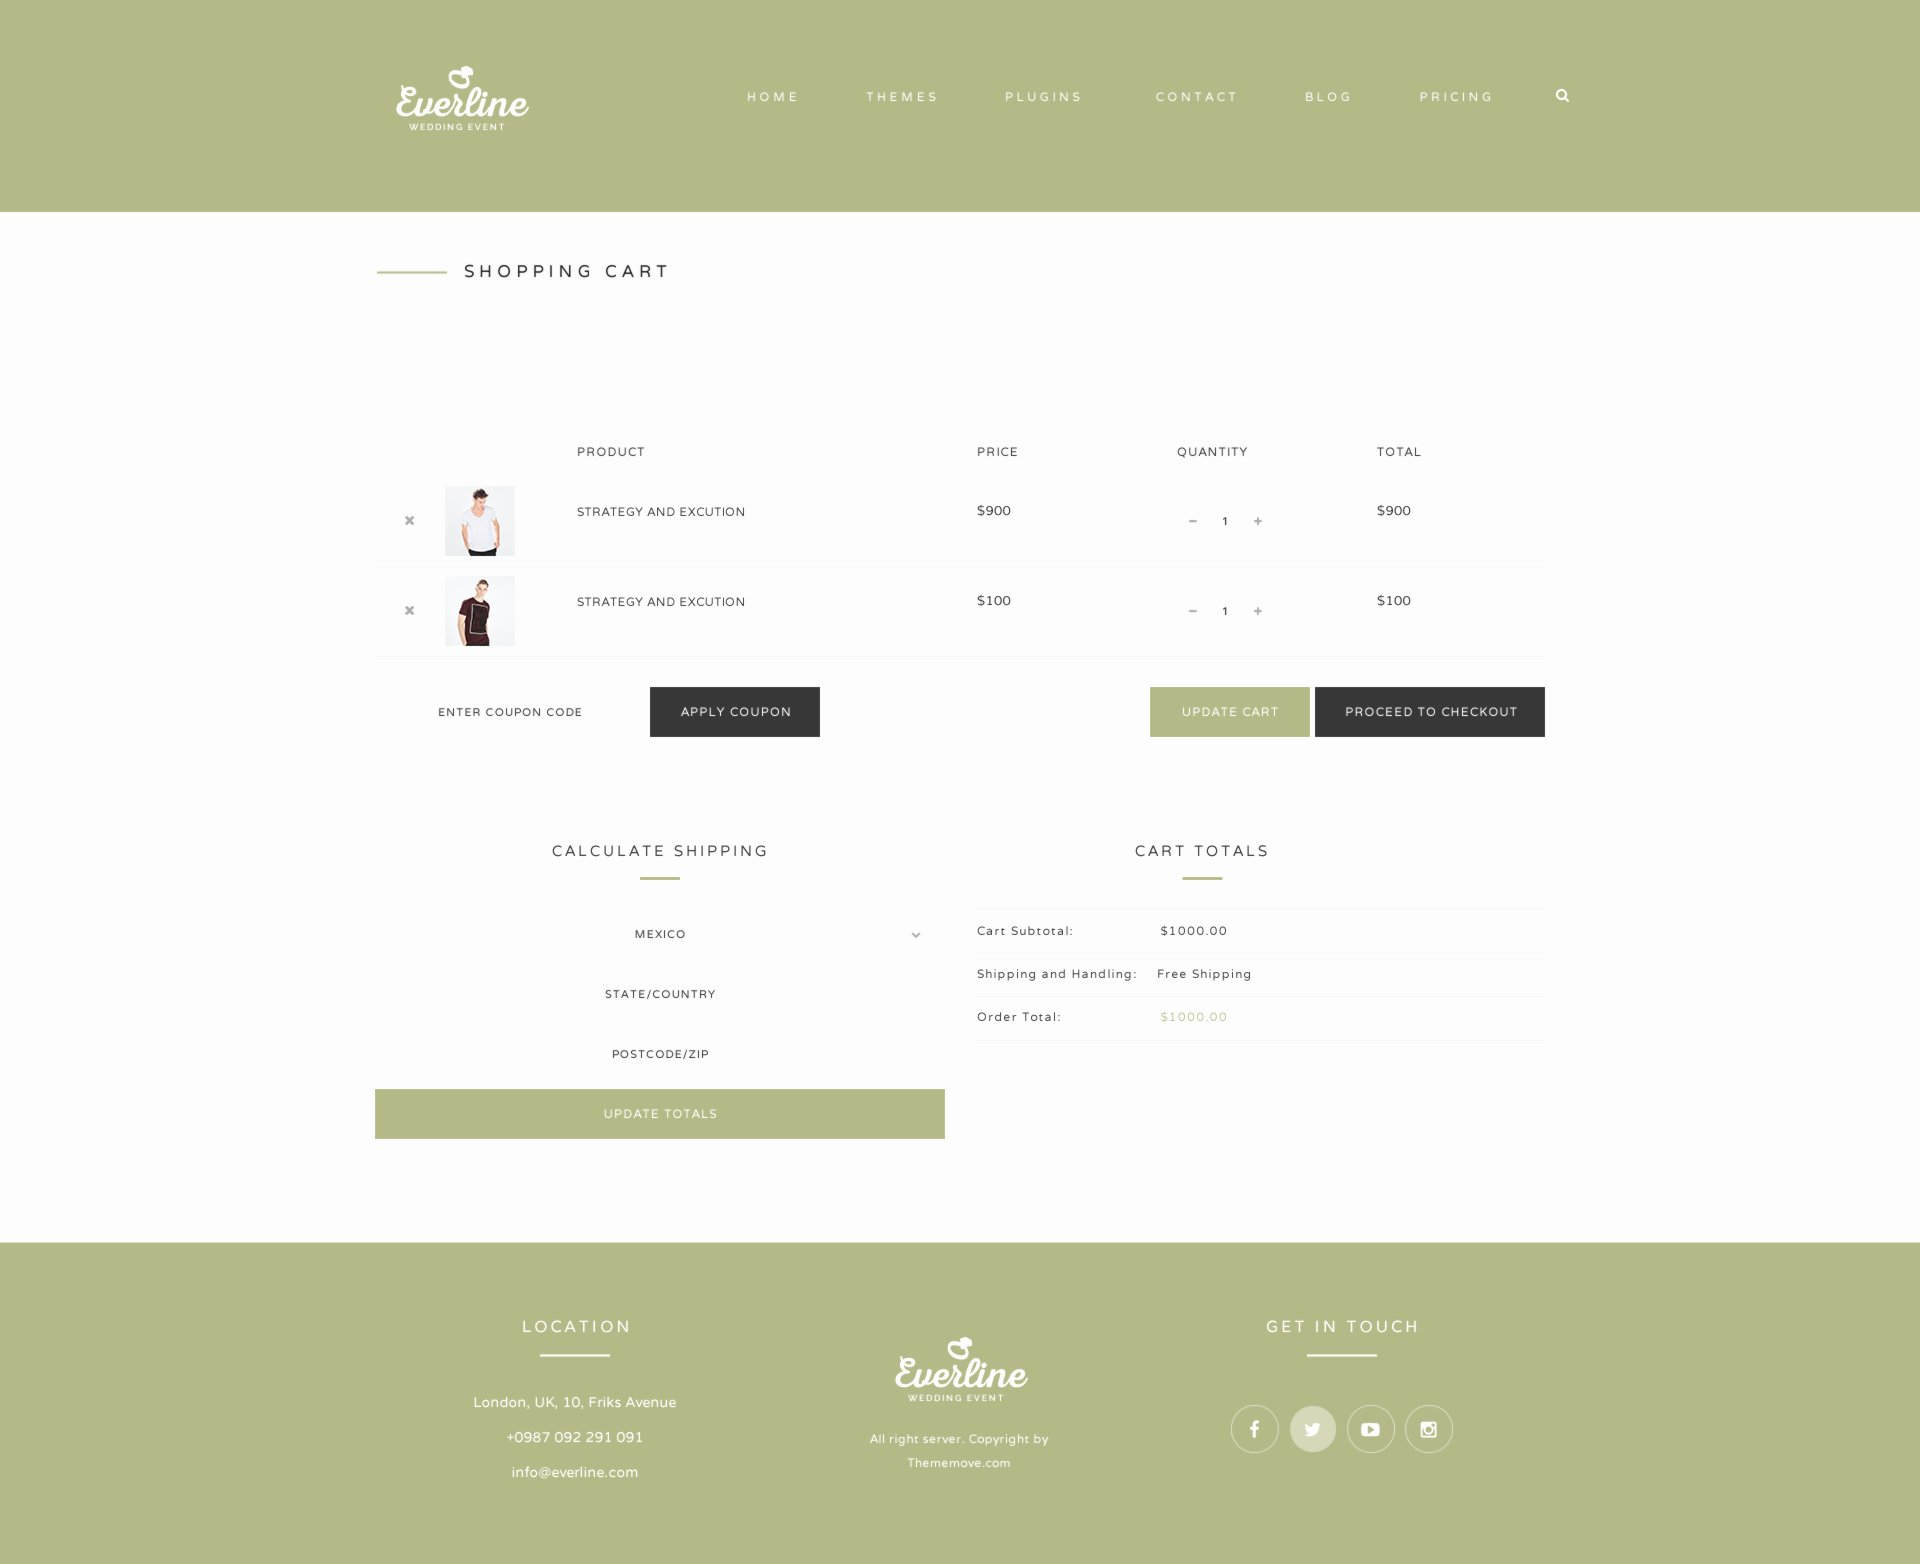 Shopping Cart HTML Template Luxury Everline Wedding events HTML Template by Plazart